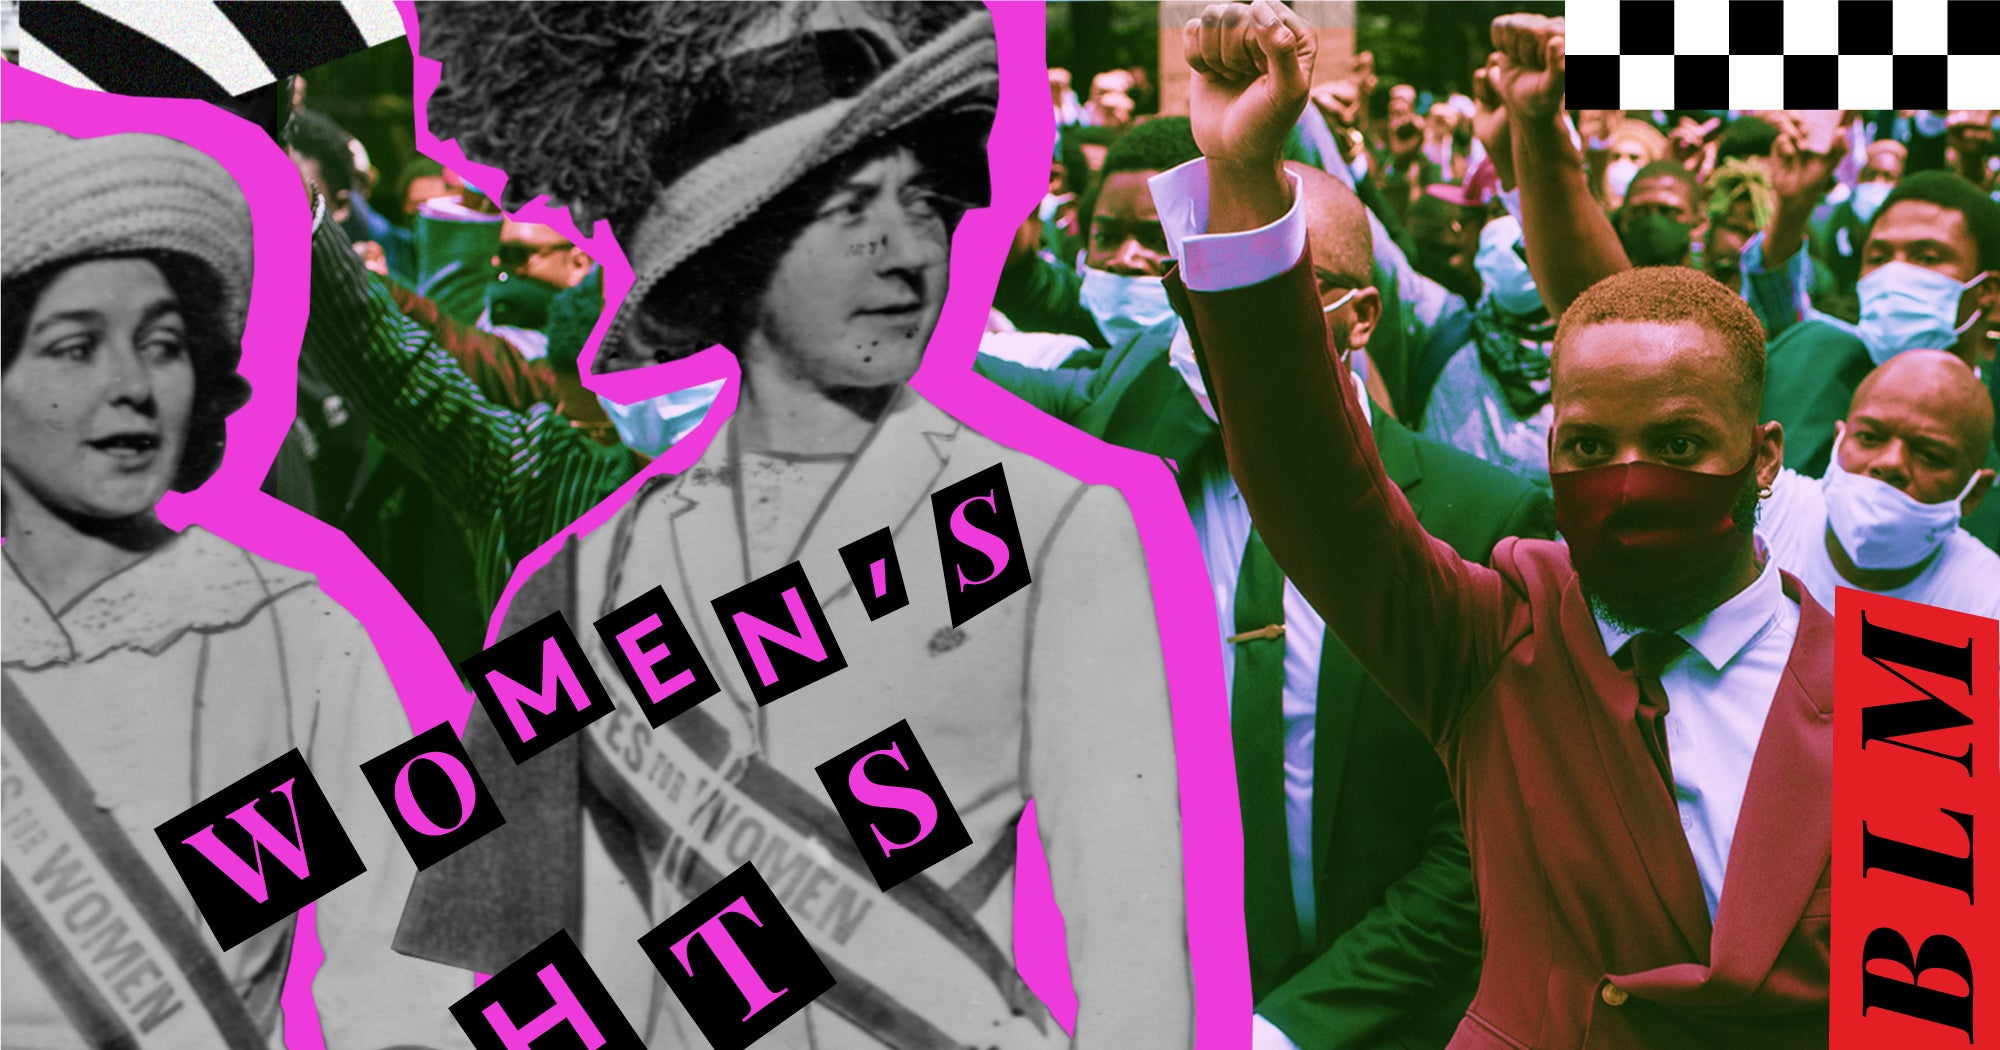 From All-White To Sunday Best: The Meanings Behind A Century of Protest Uniforms